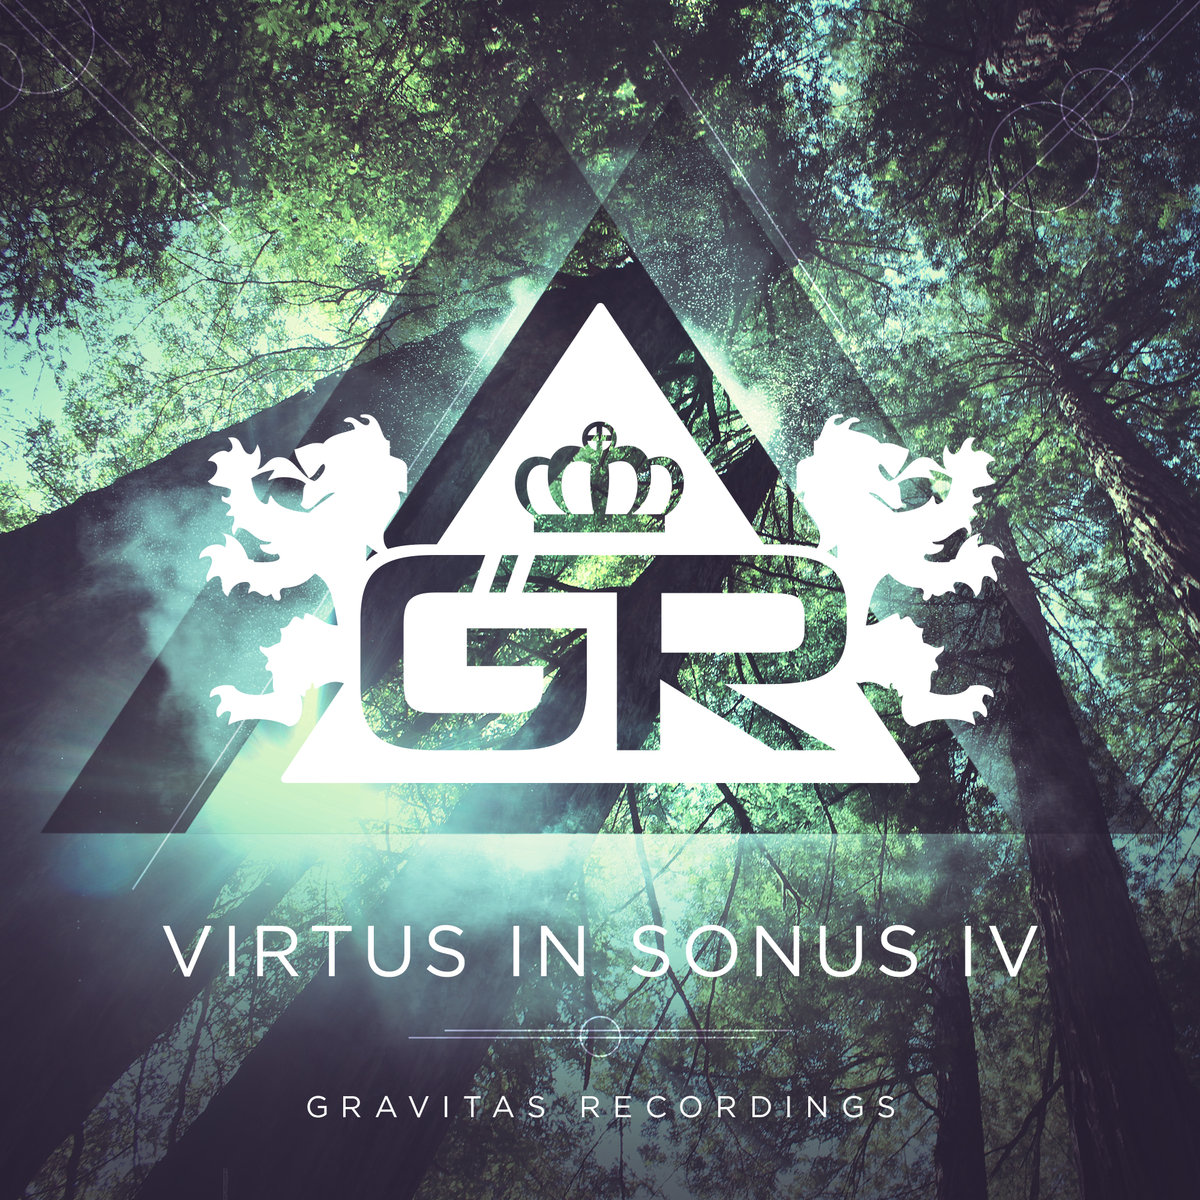 Randy Seidman feat. Rogerio Jardim & Tommy Cunningham - Come Back To Me @ 'Virtus In Sonus IV' album (Austin)